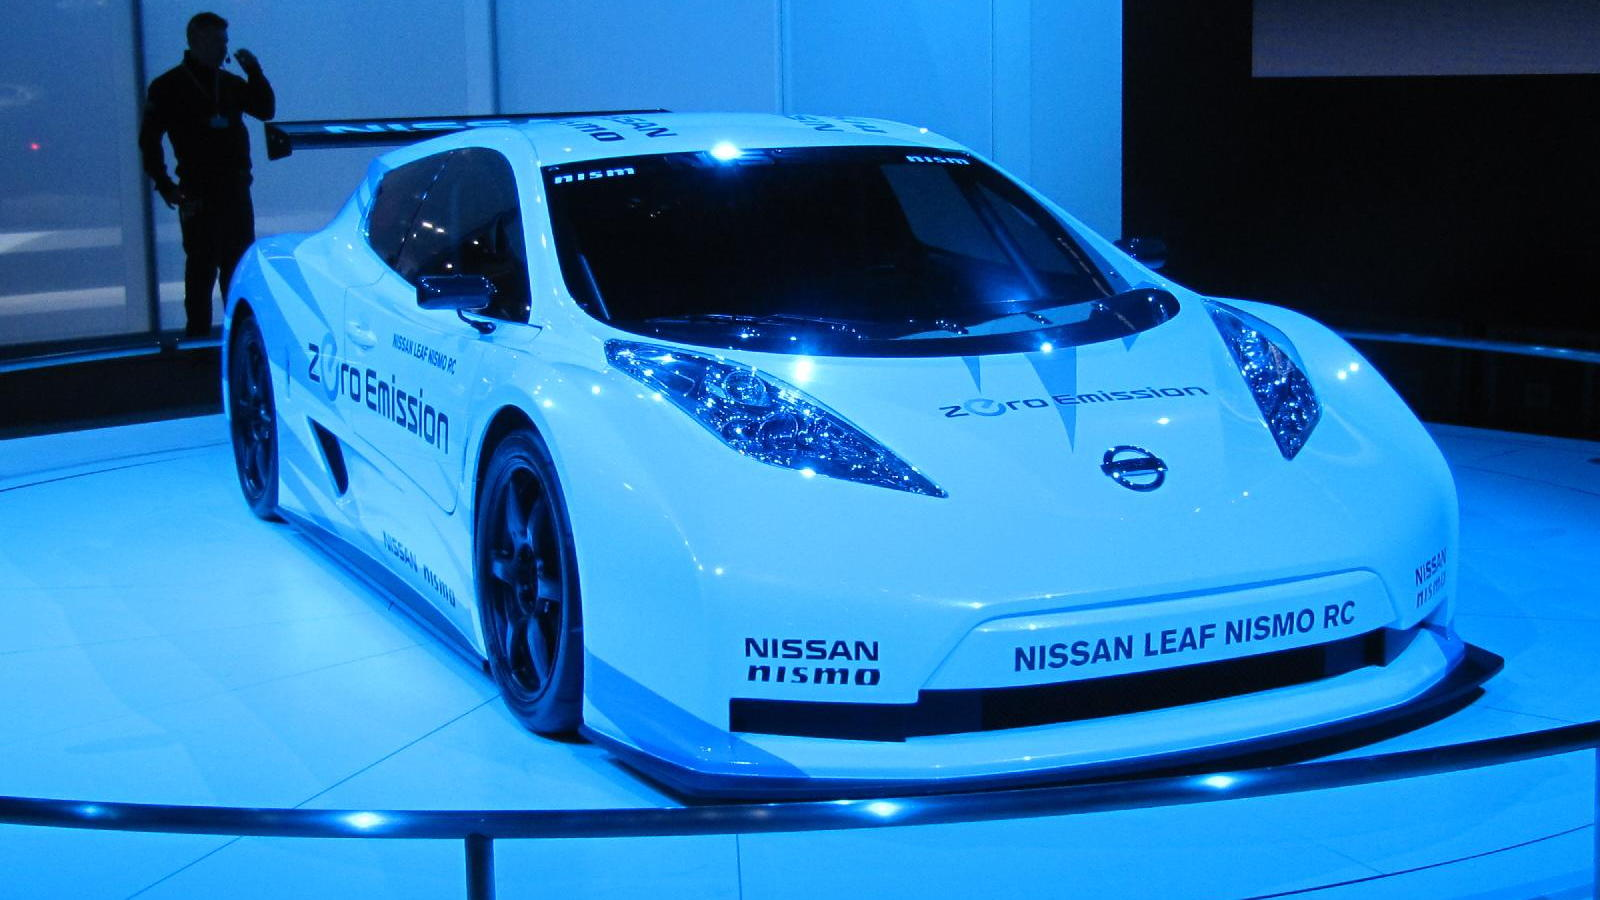 2012 Nissan Leaf Nismo RC Concept, New York Auto Show, April 2011